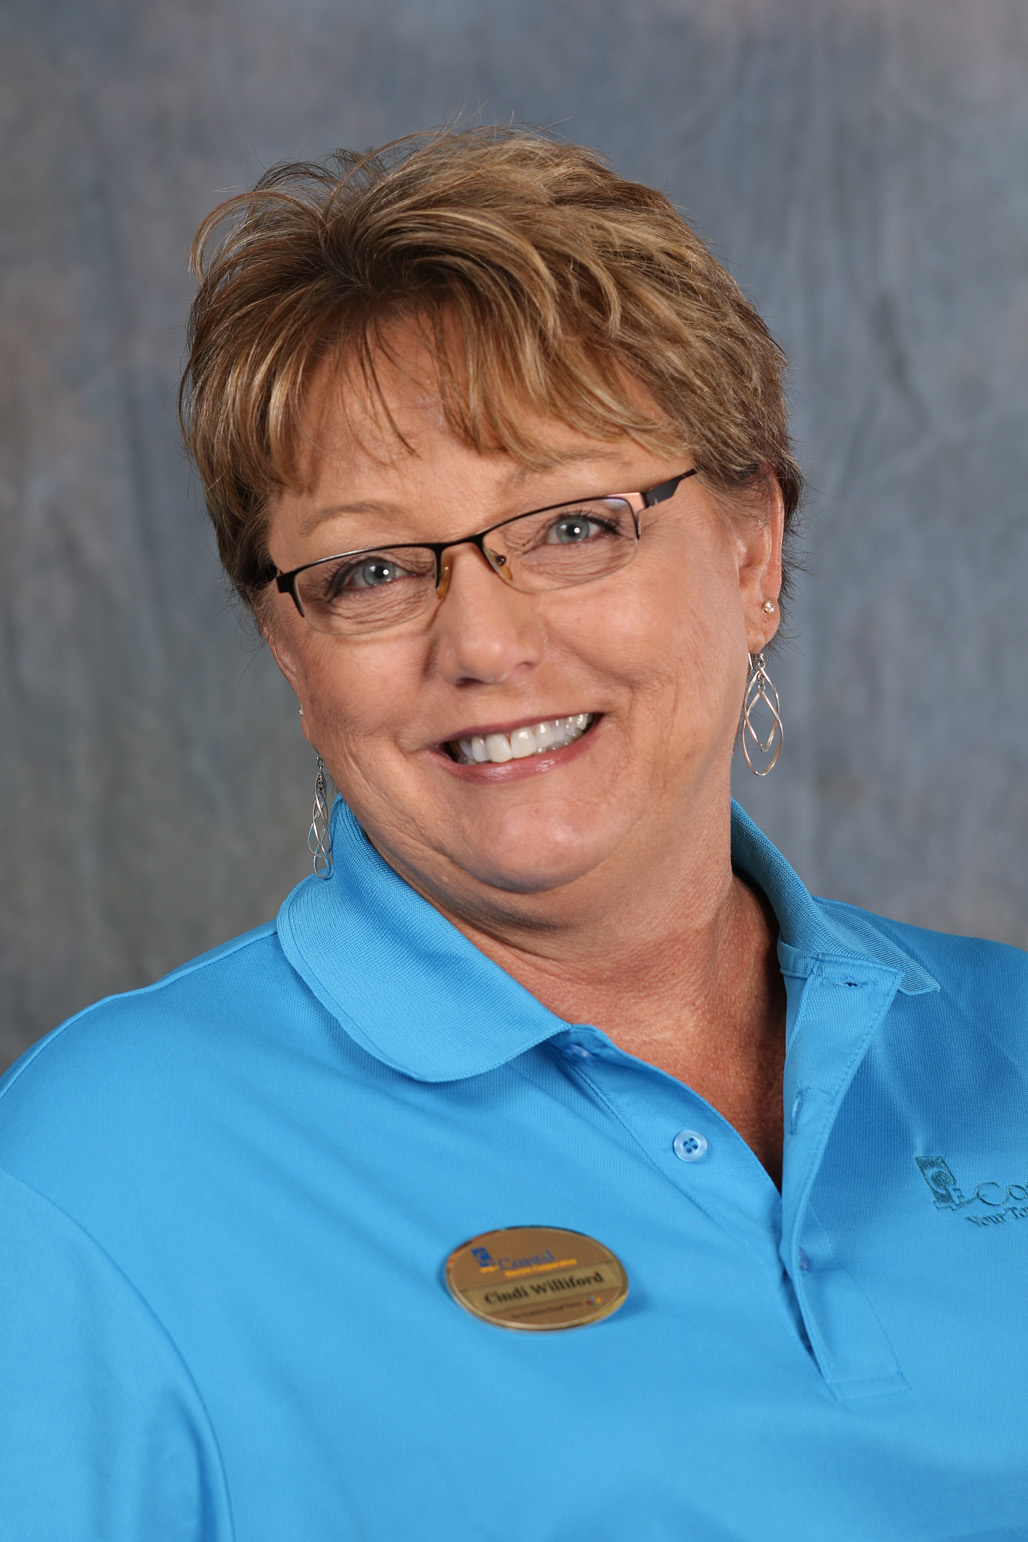 Cindi WillifordSenior Customer Service Representative Specialist